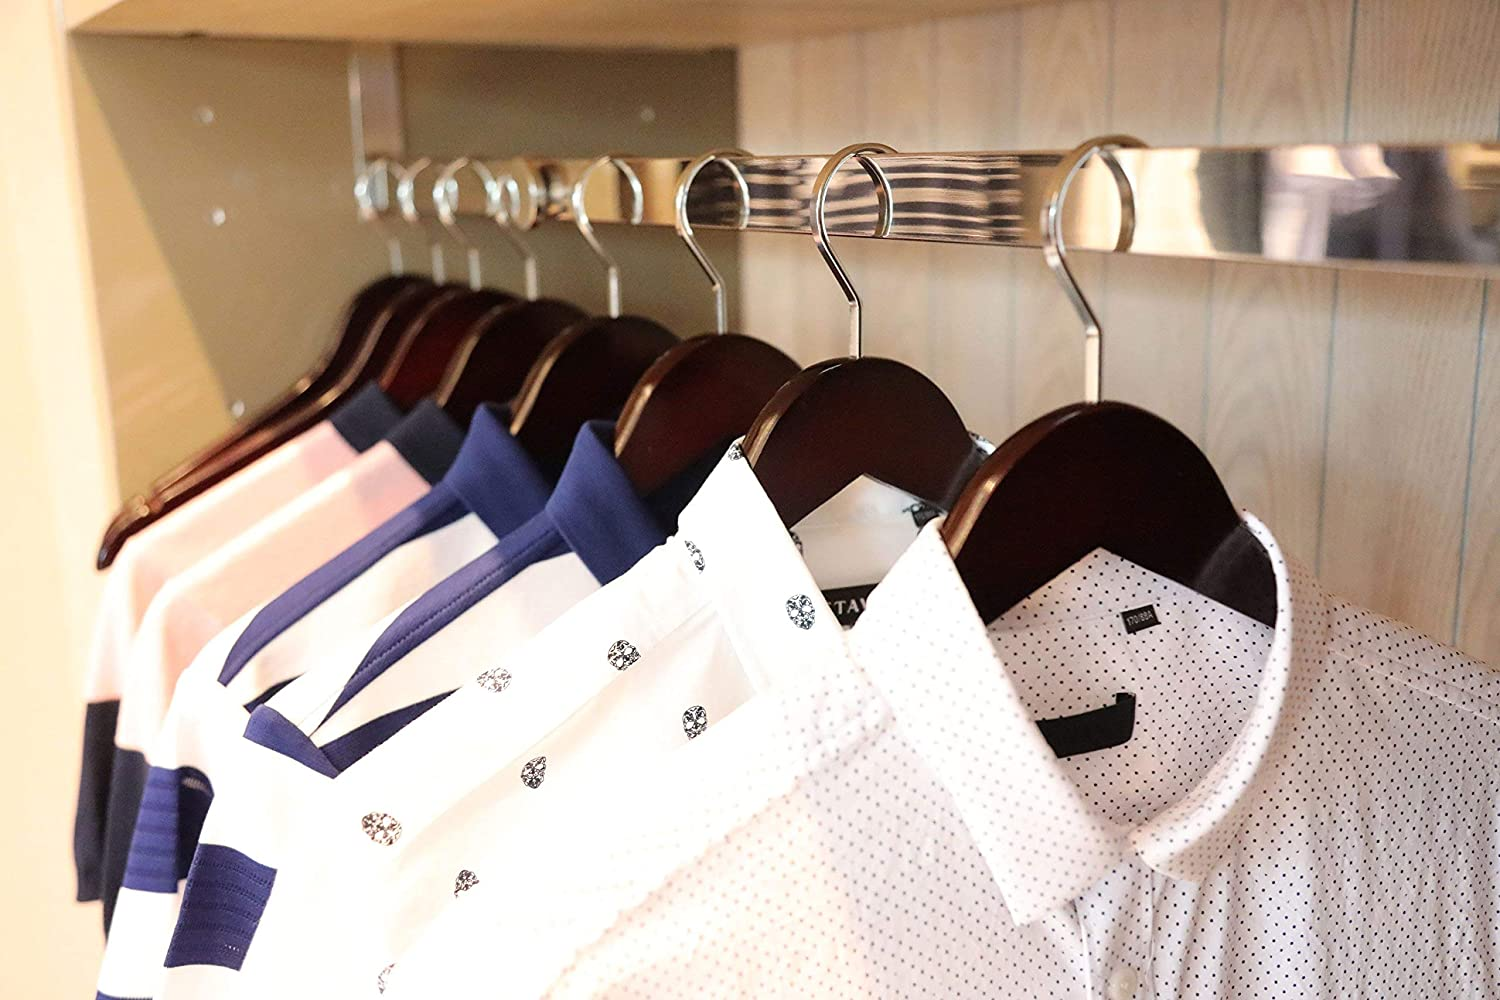 Luxury Wood Coat Hangers TOPIA HANGER Extra Strong White Wooden Suit Hangers Glossy Finish with Extra Thick Hooks/&Anti-Slip Bar 16-Pack CT01W